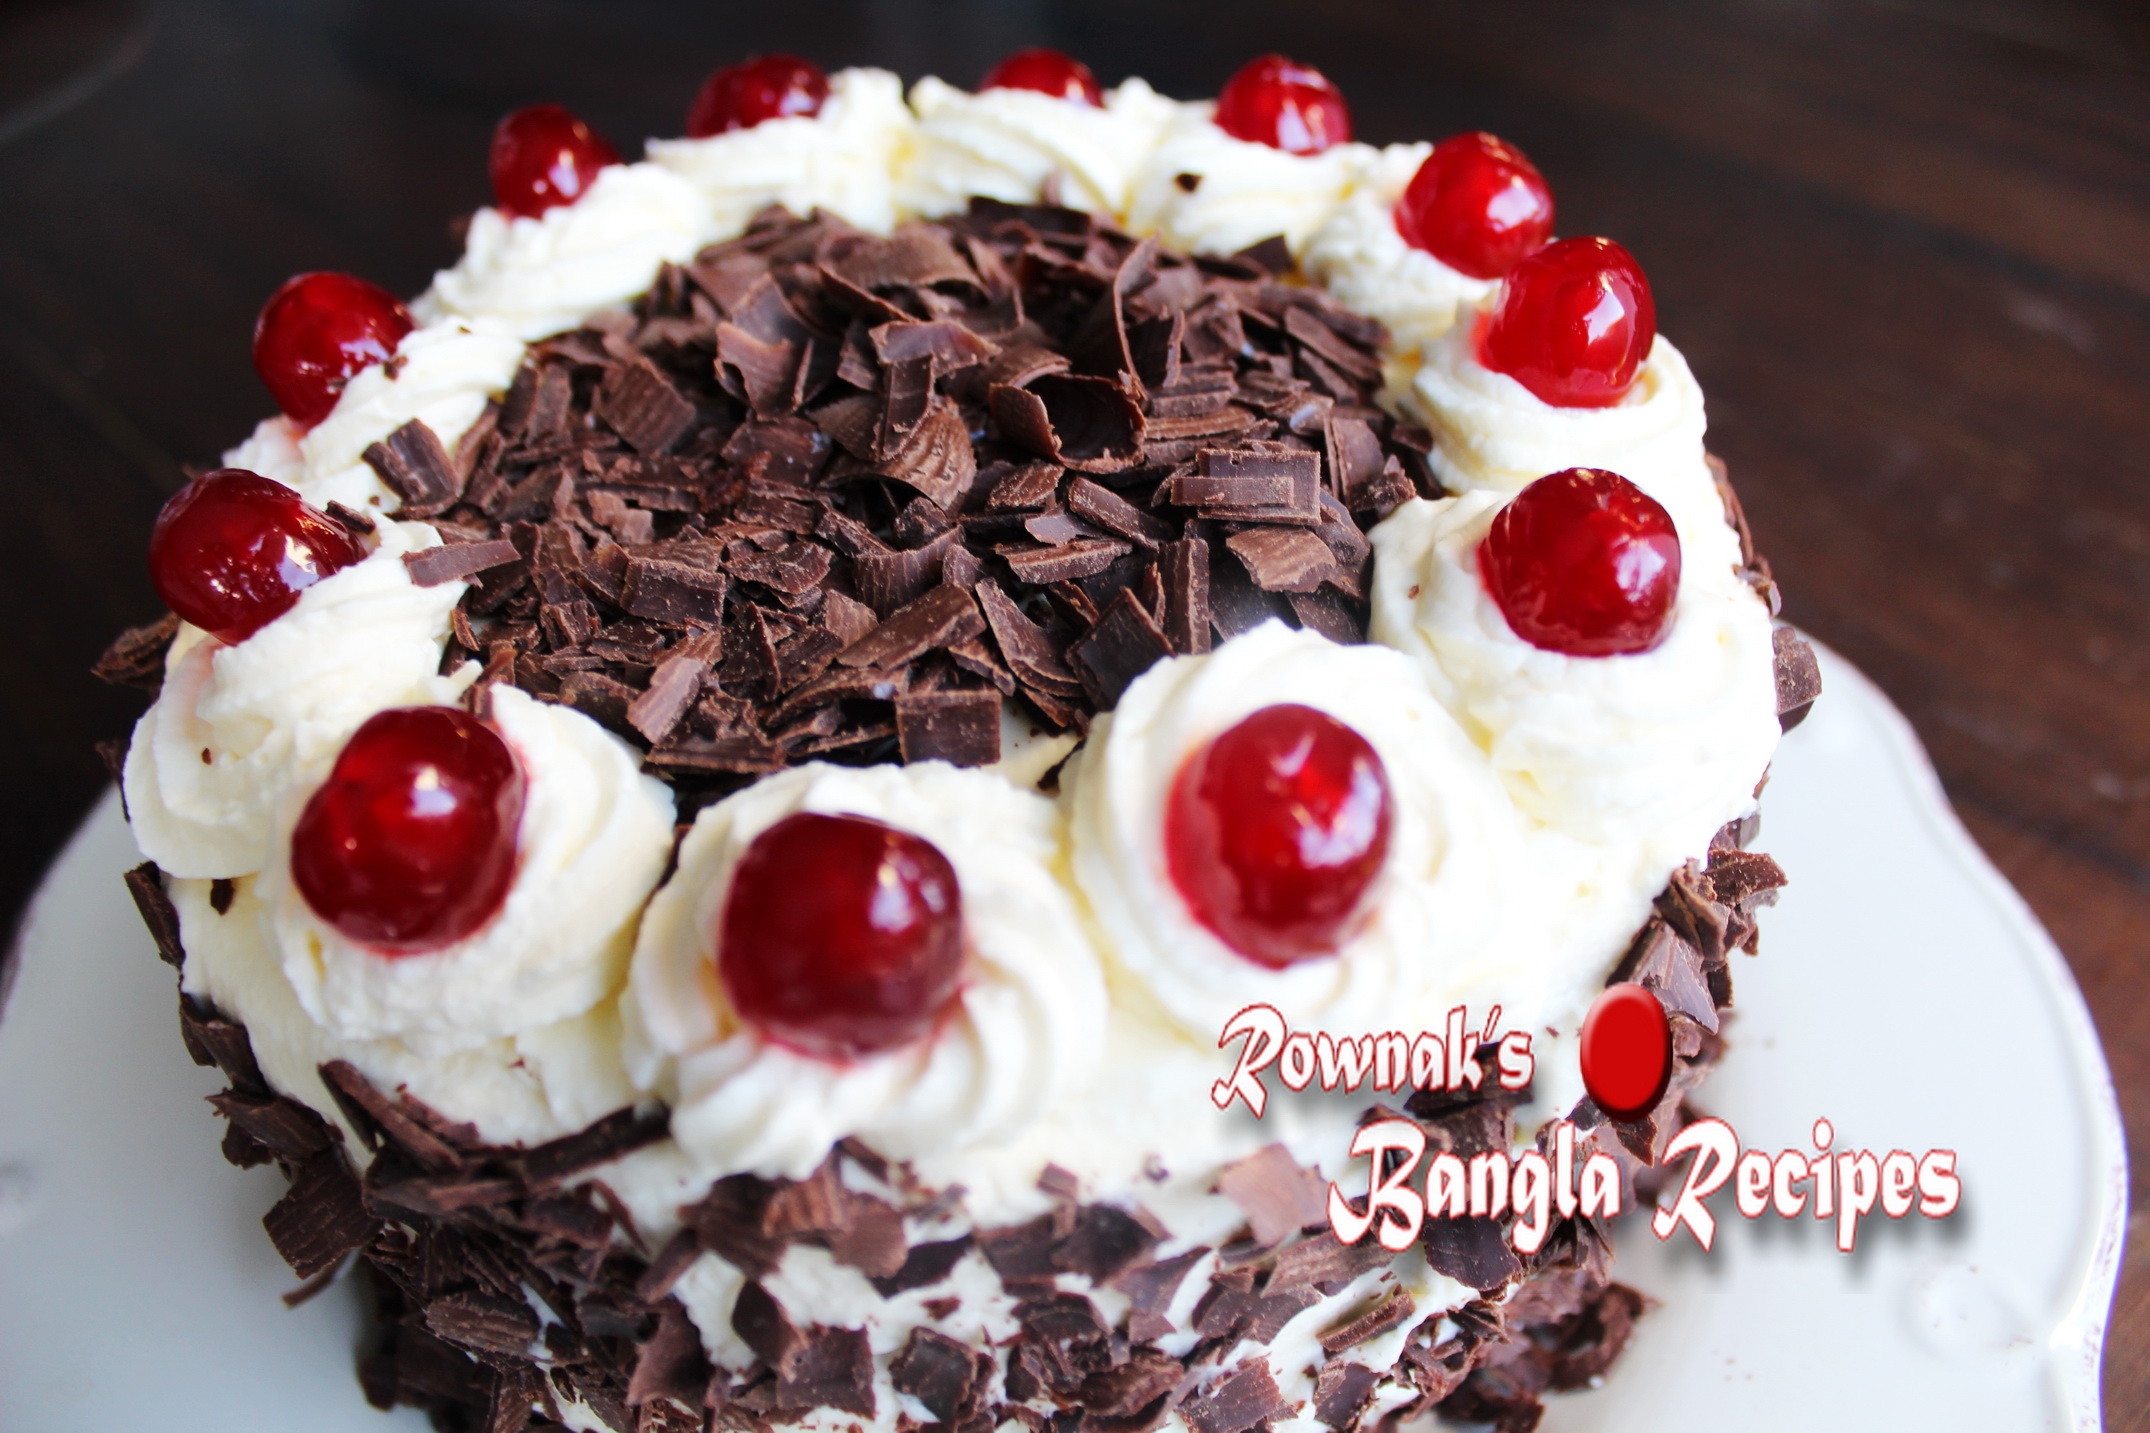 Forest cake recipe black forest cake homeactive us